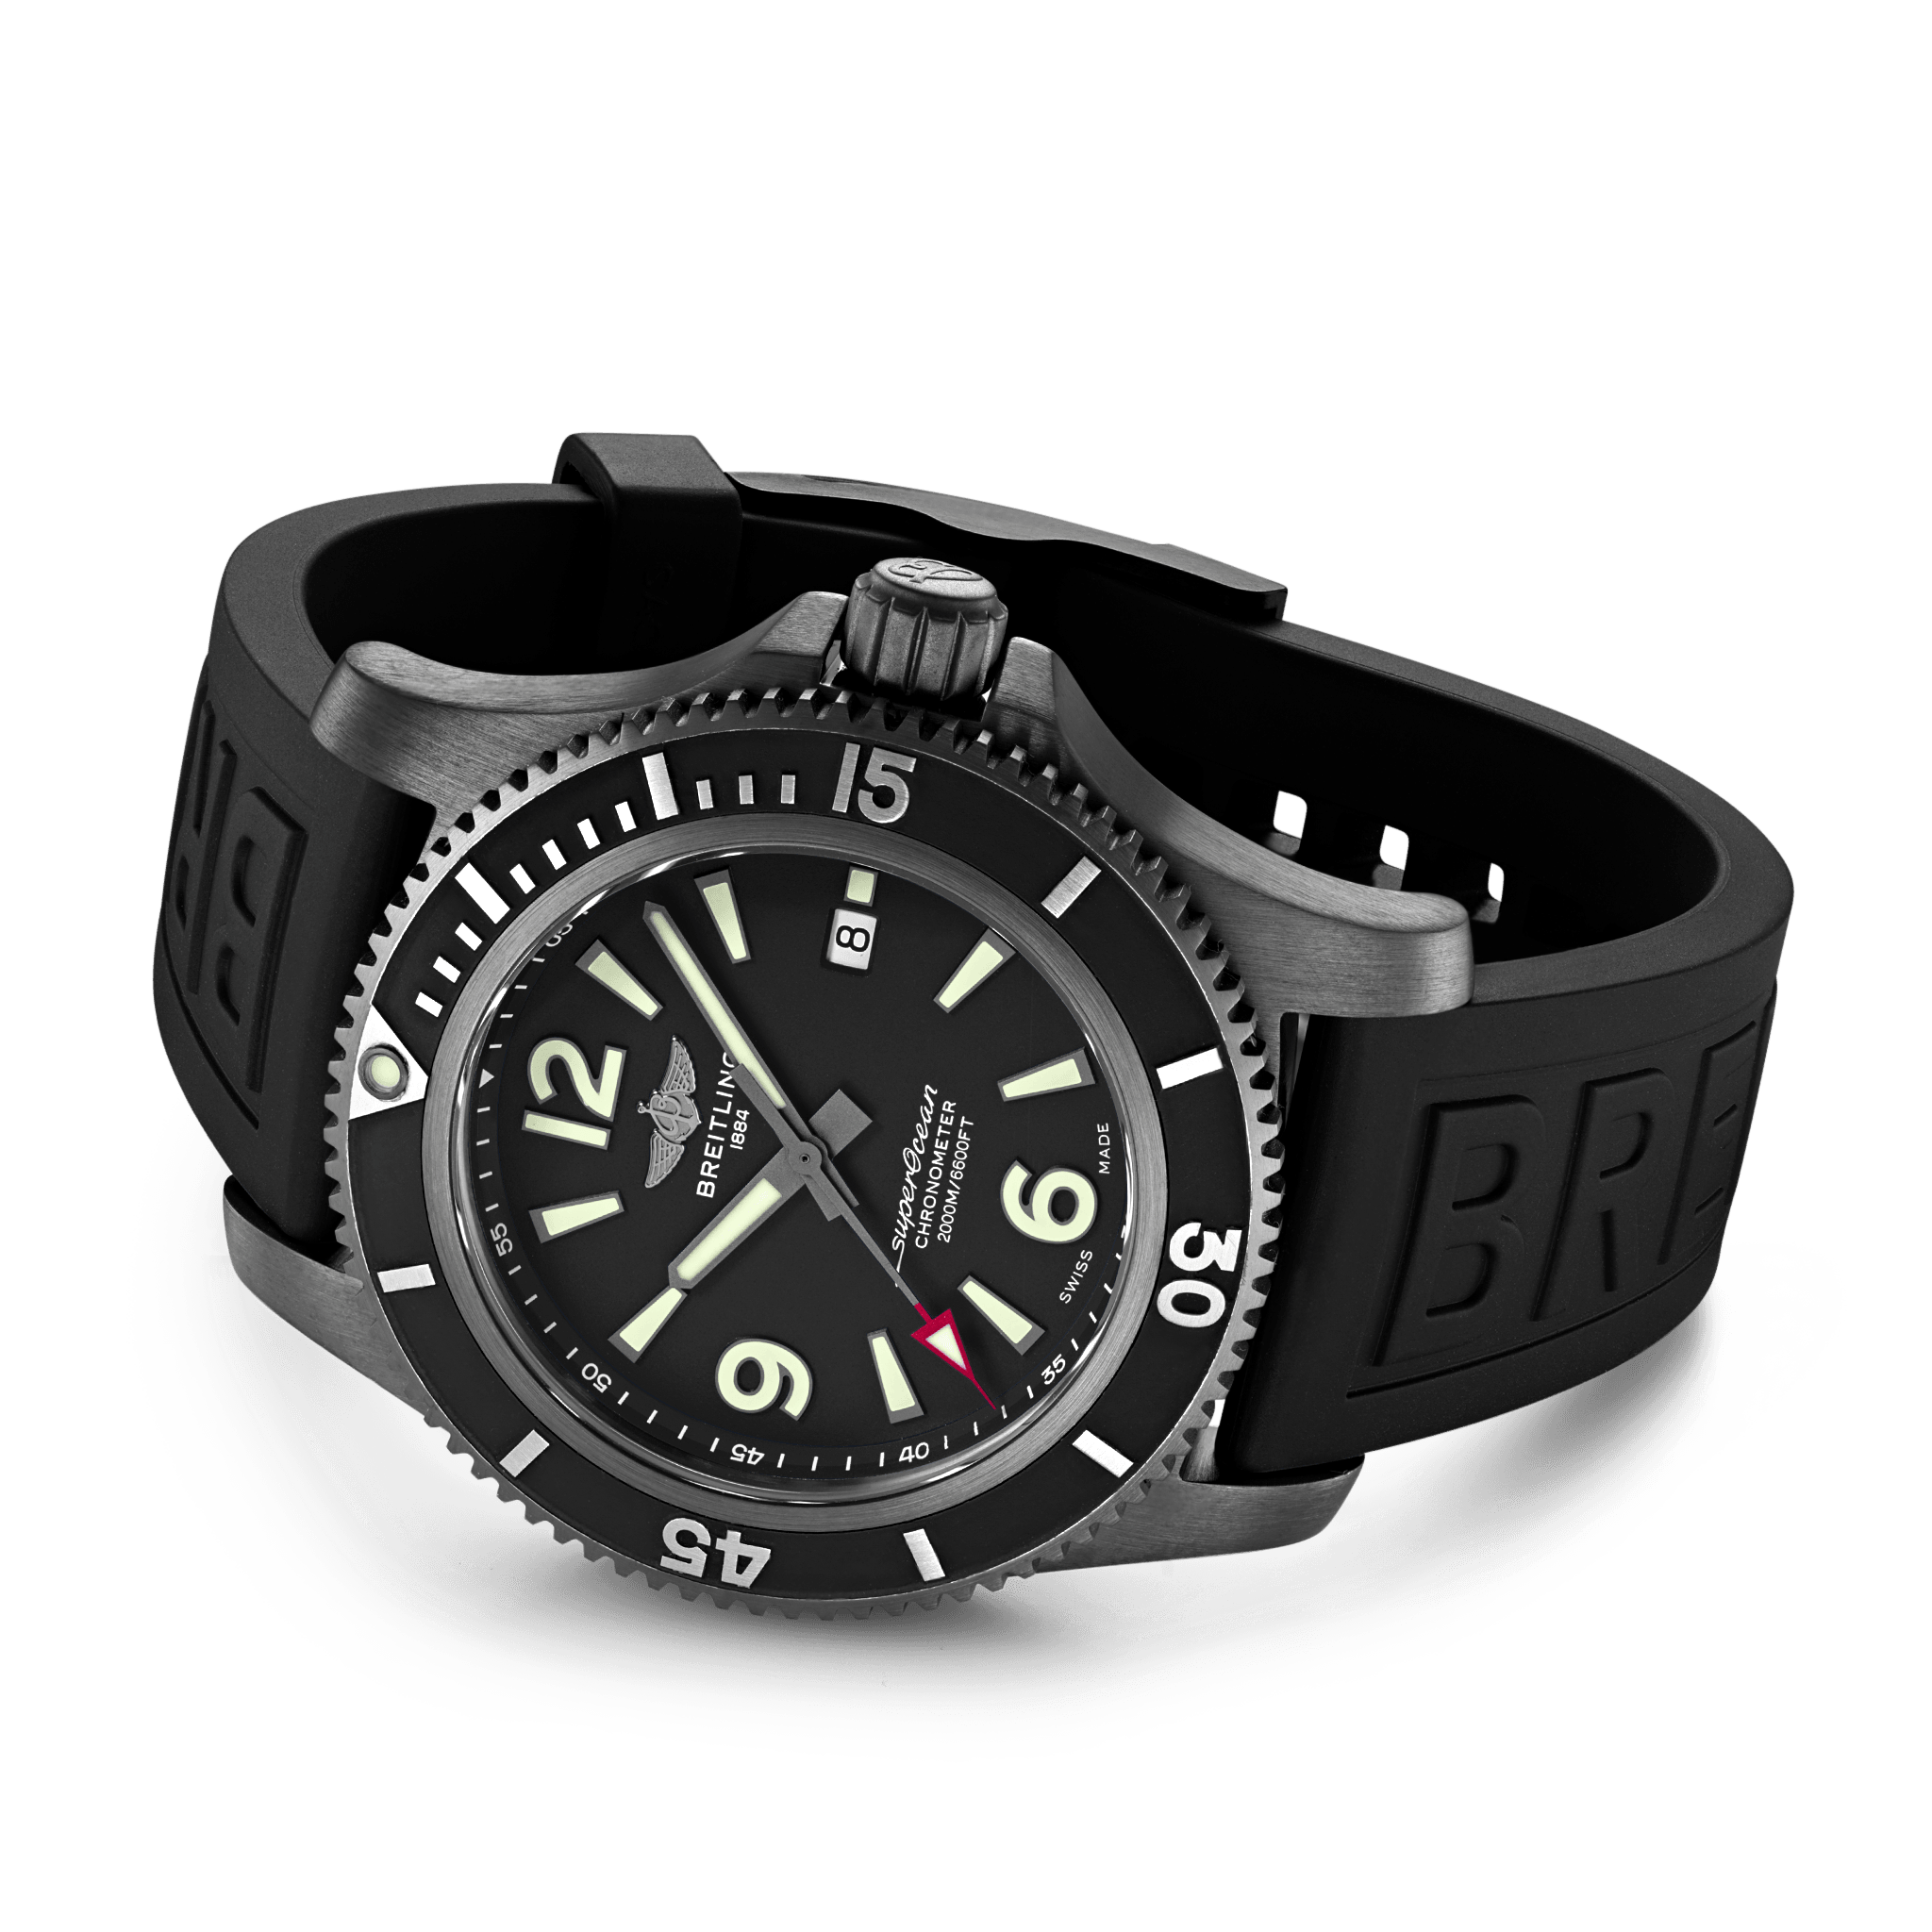 SUPEROCEAN HERITAGE, SPORTS WATCHES